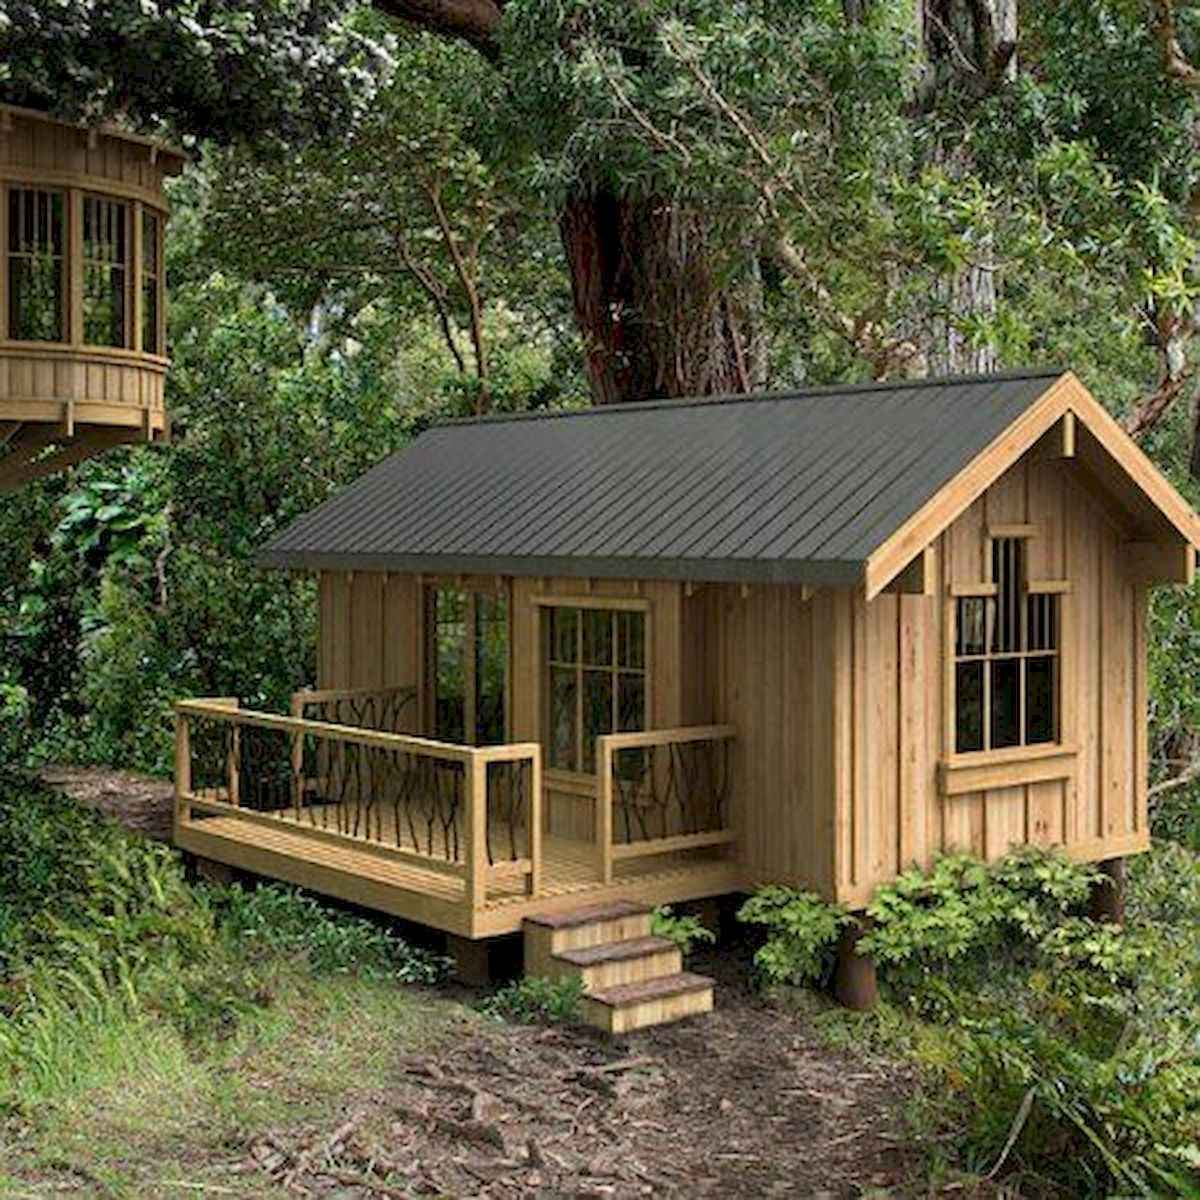 40 Stunning Log Cabin Homes Plans One Story Design Ideas (15)